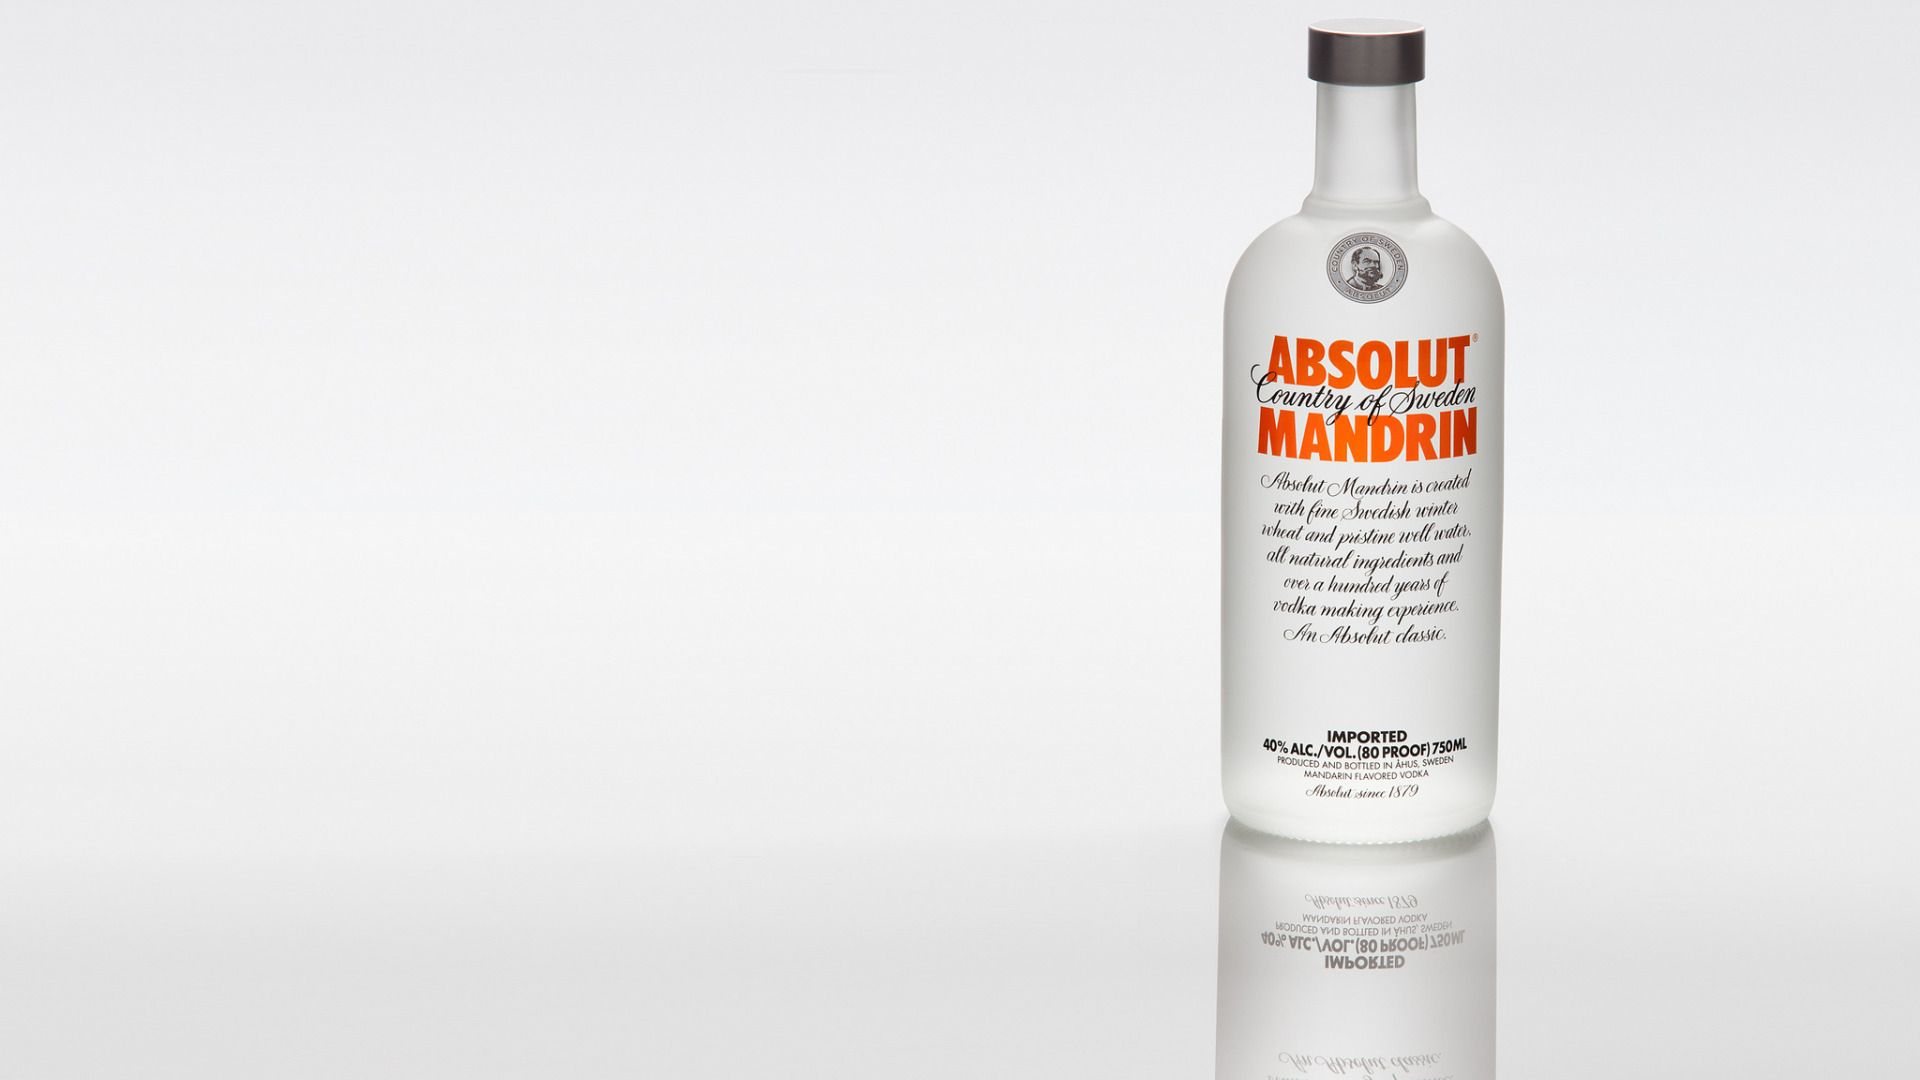 Absolut Vodka Mandrin, Absolut Mandrin